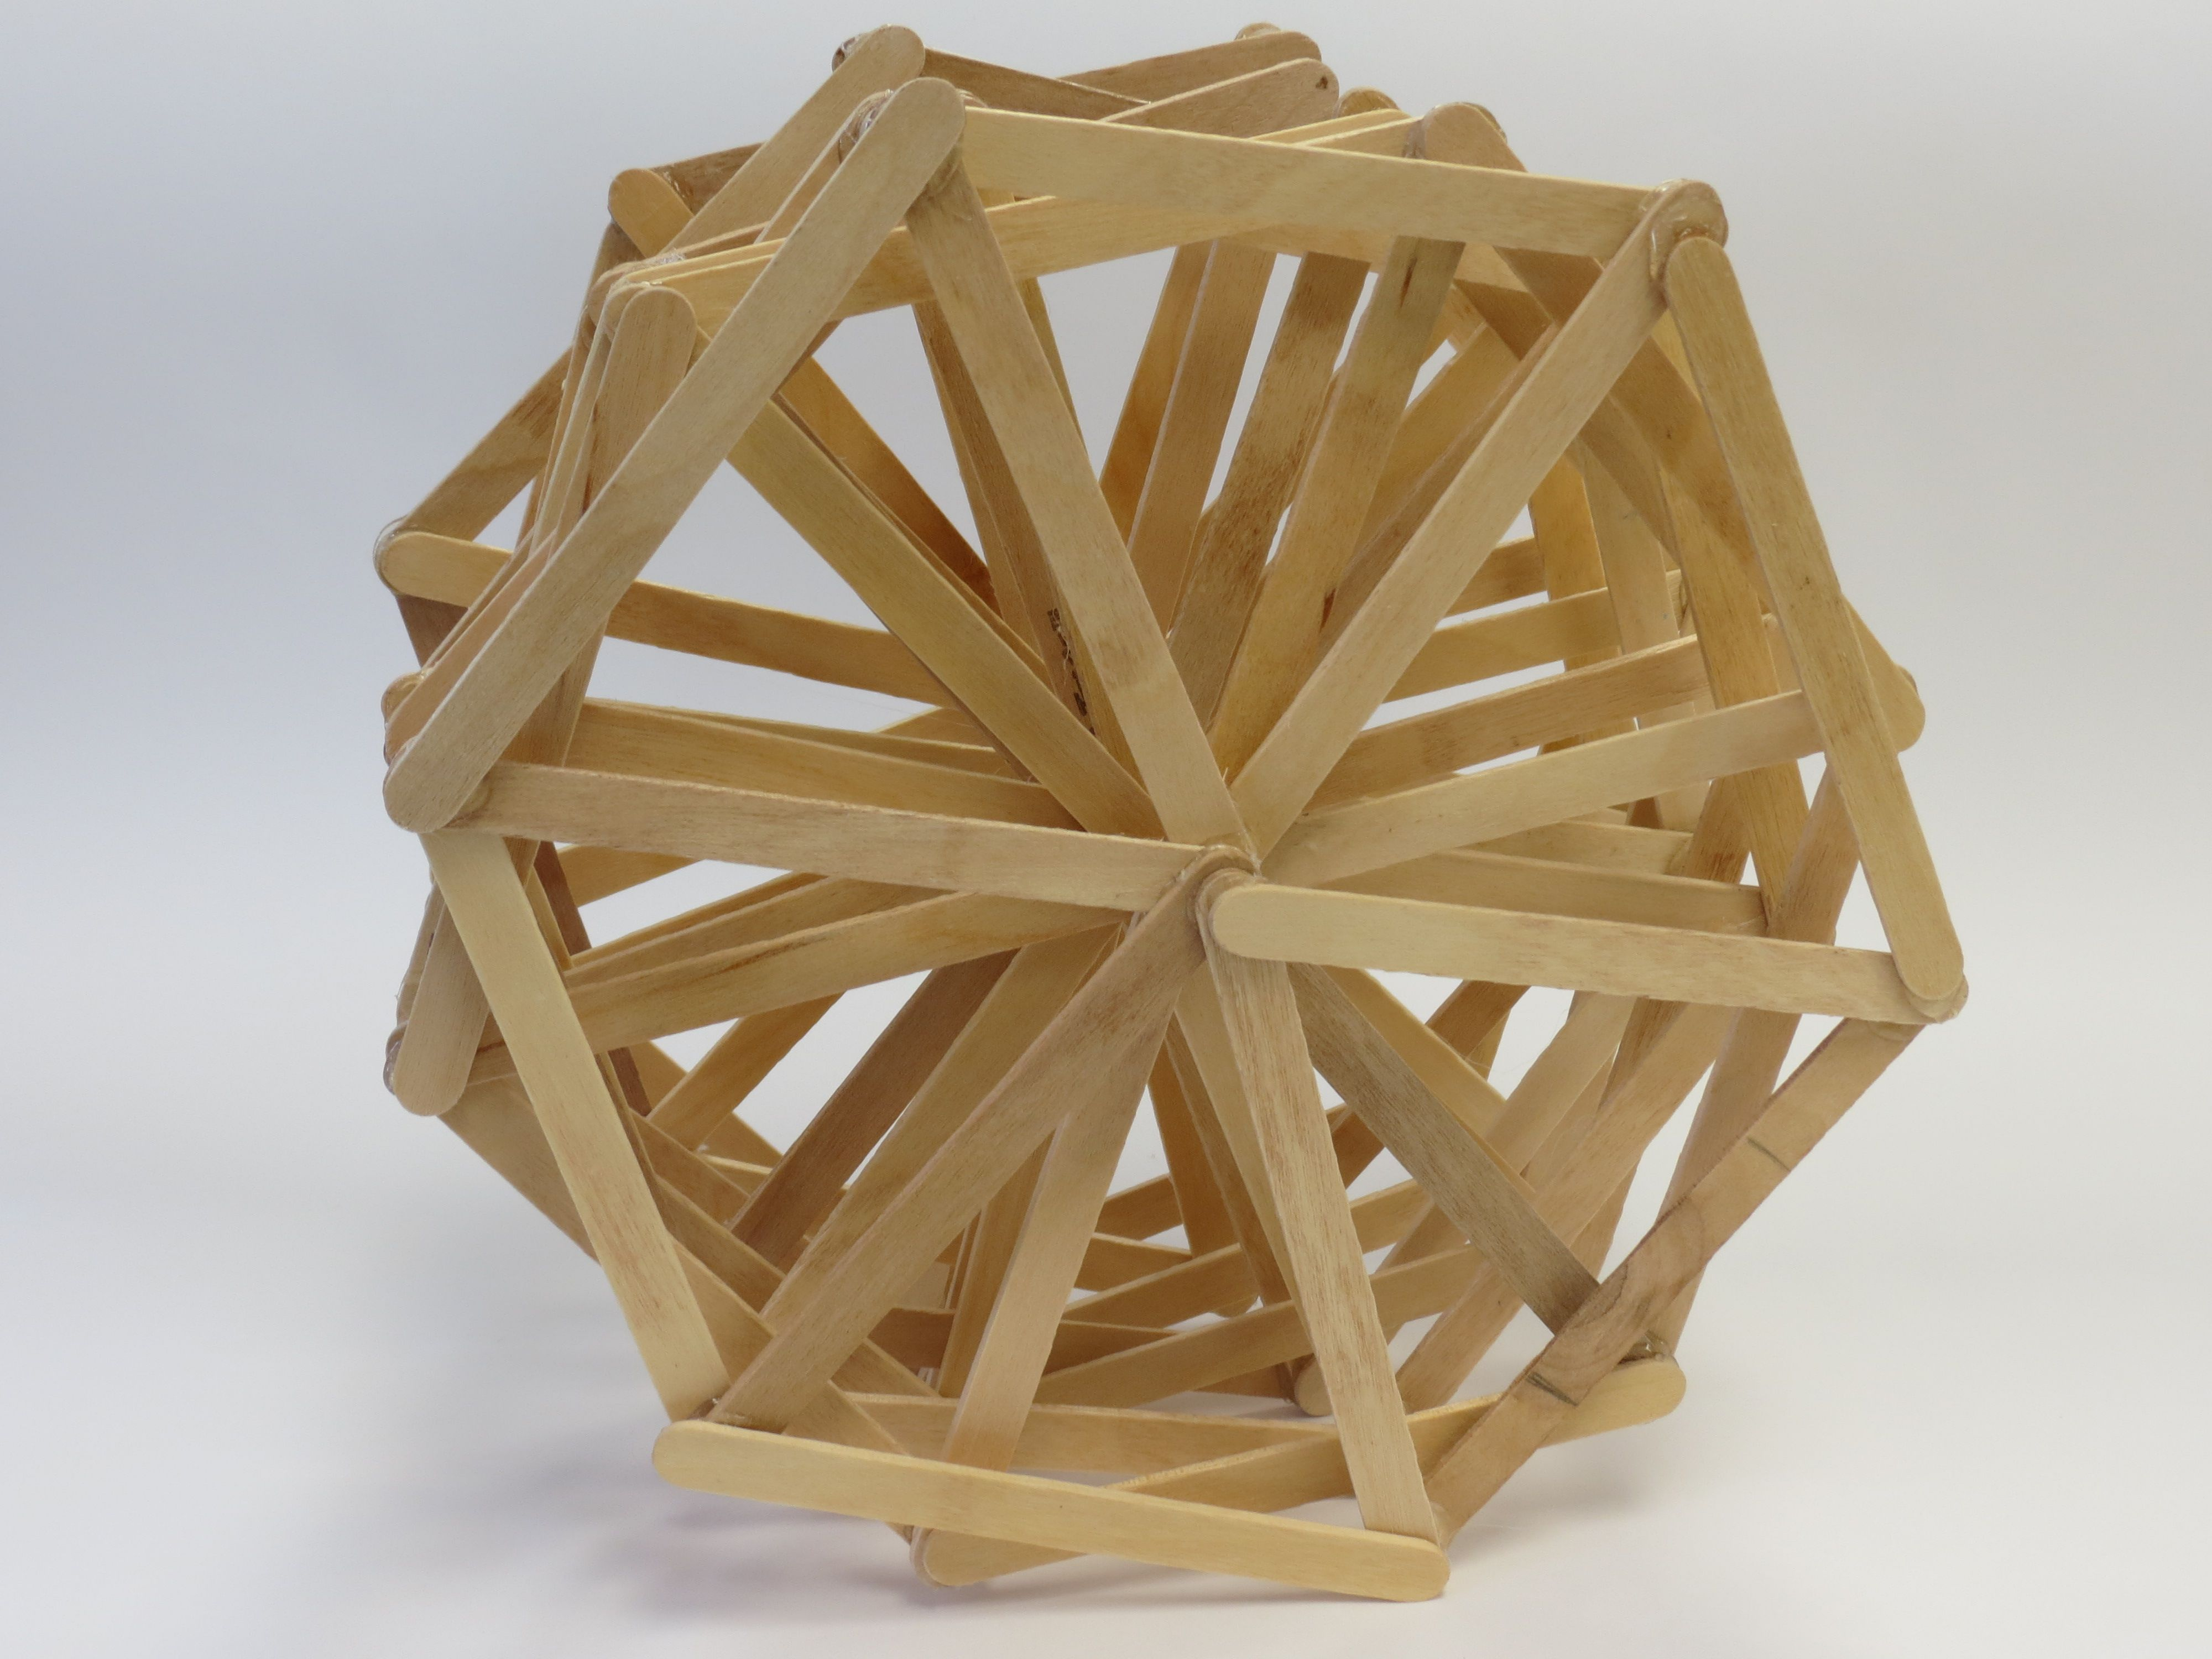 Crafts for highschool students - Lehigh Senior High School Center For The Arts Student Work Popsicle Stick Sculpture